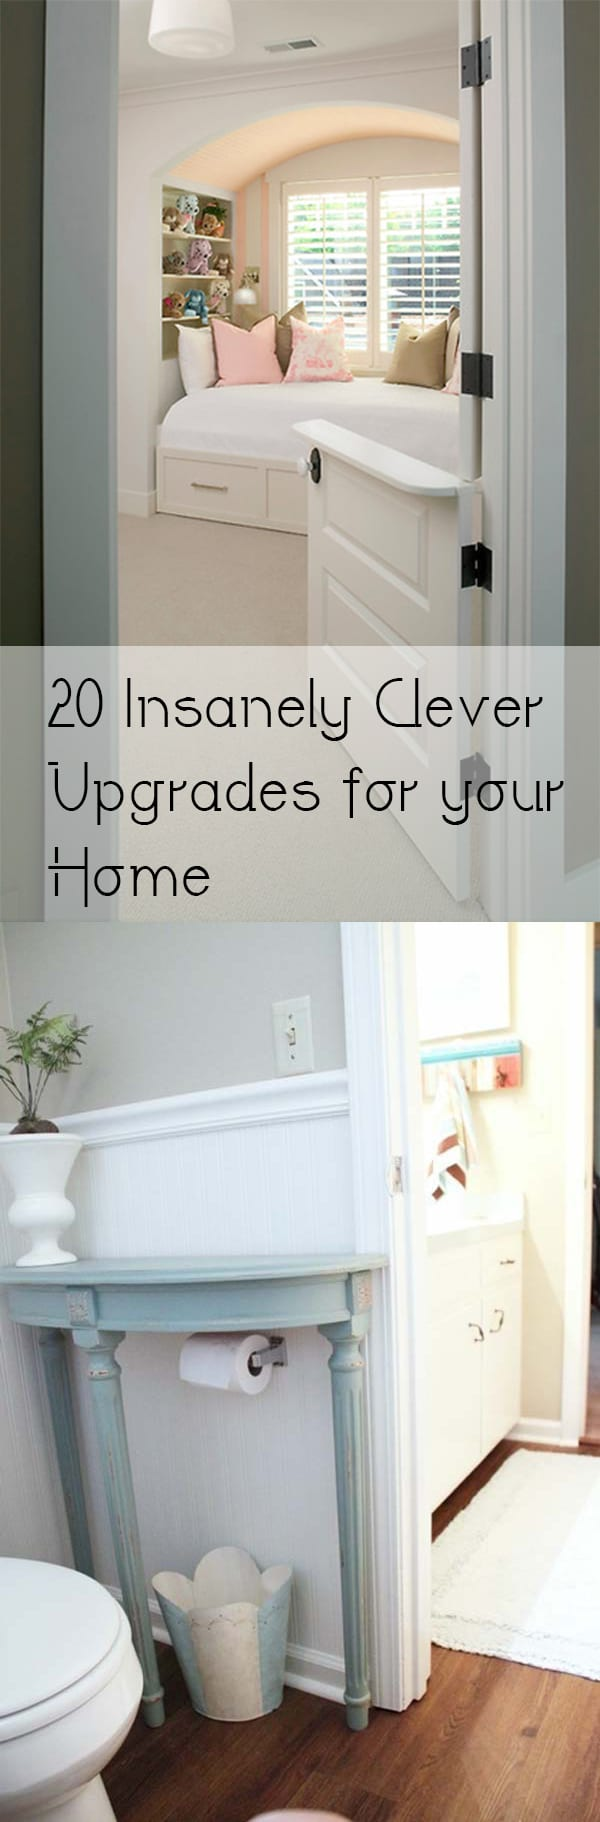 20 Insanely Clever Upgrades for your Home | How To Build It